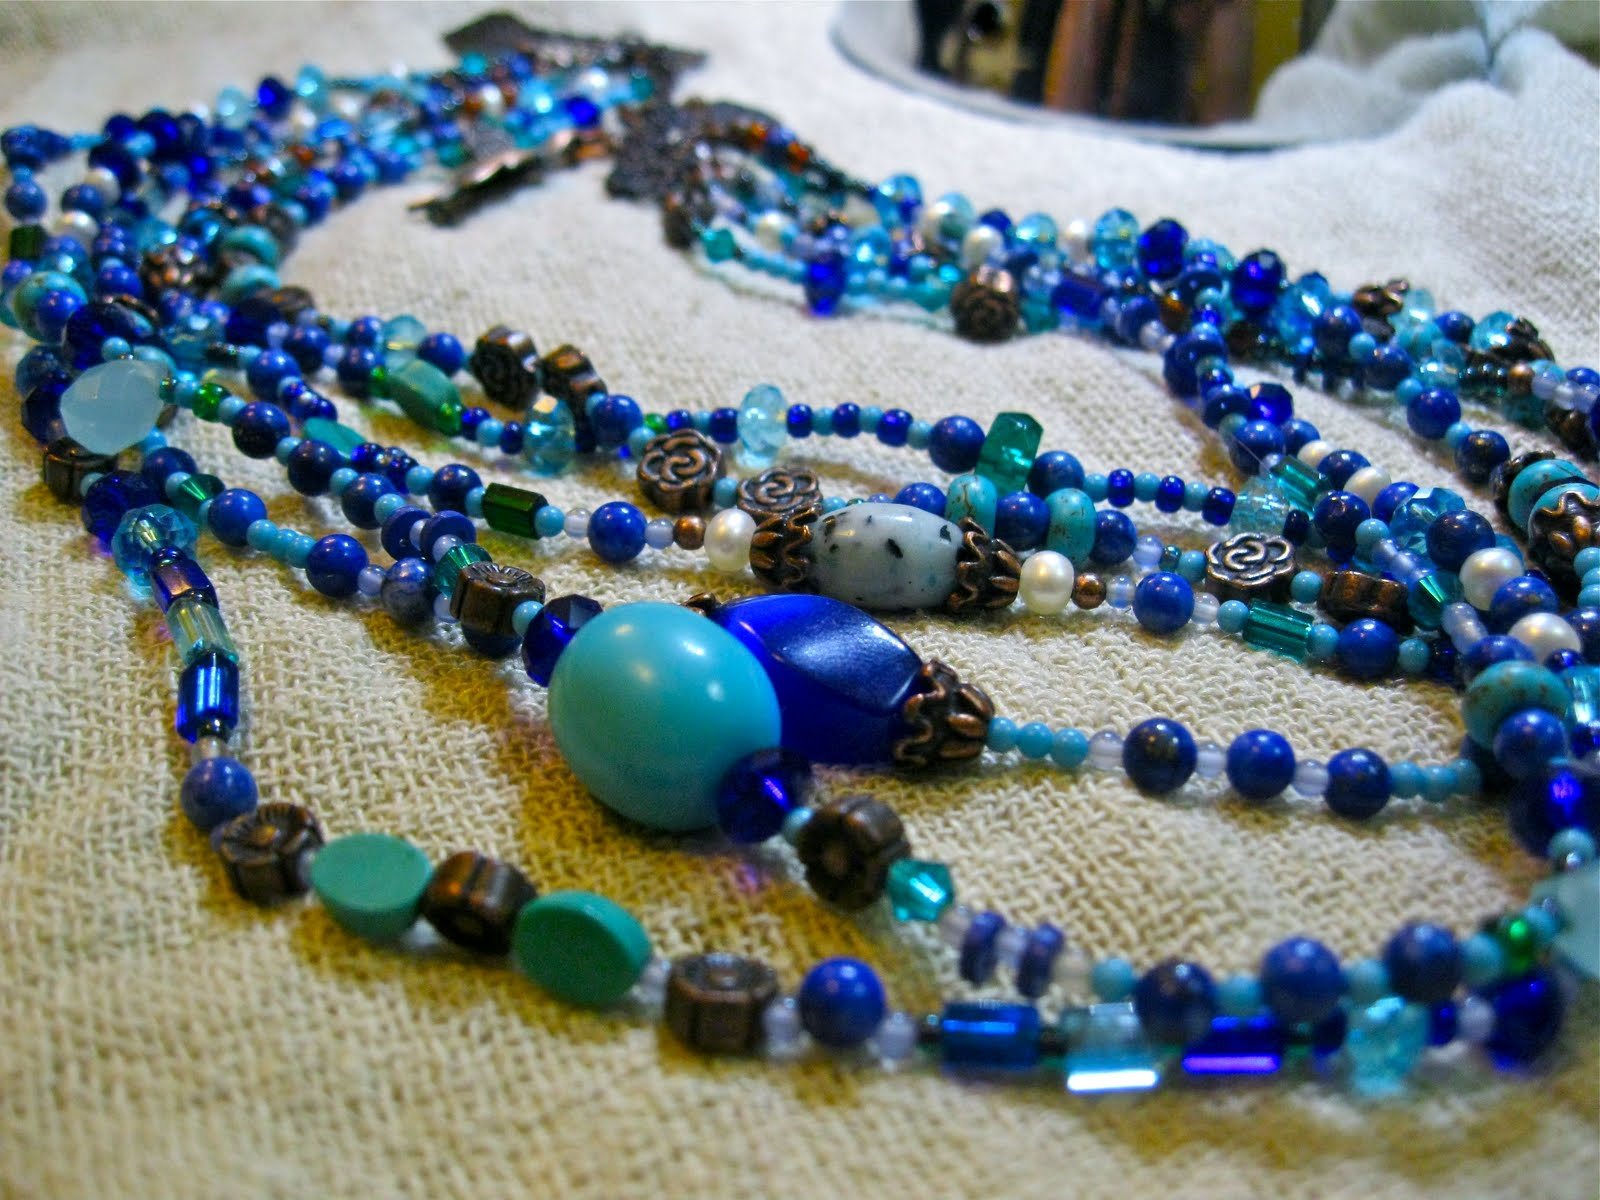 and unique inventory beads pacific is designer of findings provide beadsbanner a wholesale for manufacturer jewelry to an amazing leading vision our customers